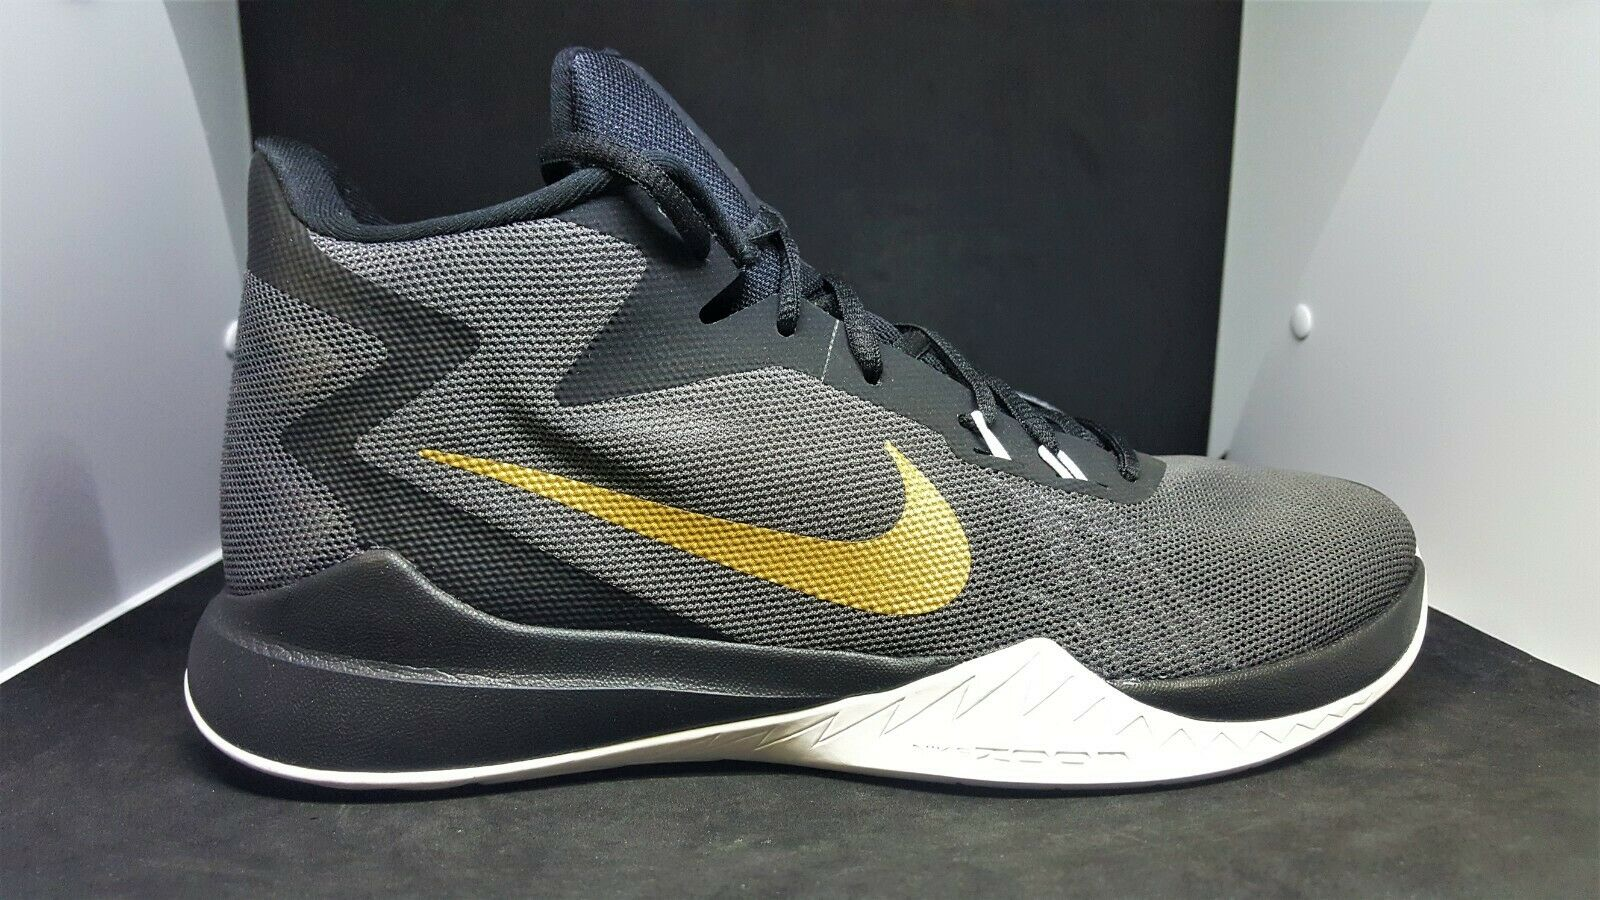 227d0c6275 Nike Zoom Evidence Mens shoes Anthracite gold 852464-005 size 8.5 Basketball  ntisaf4982-Athletic Shoes